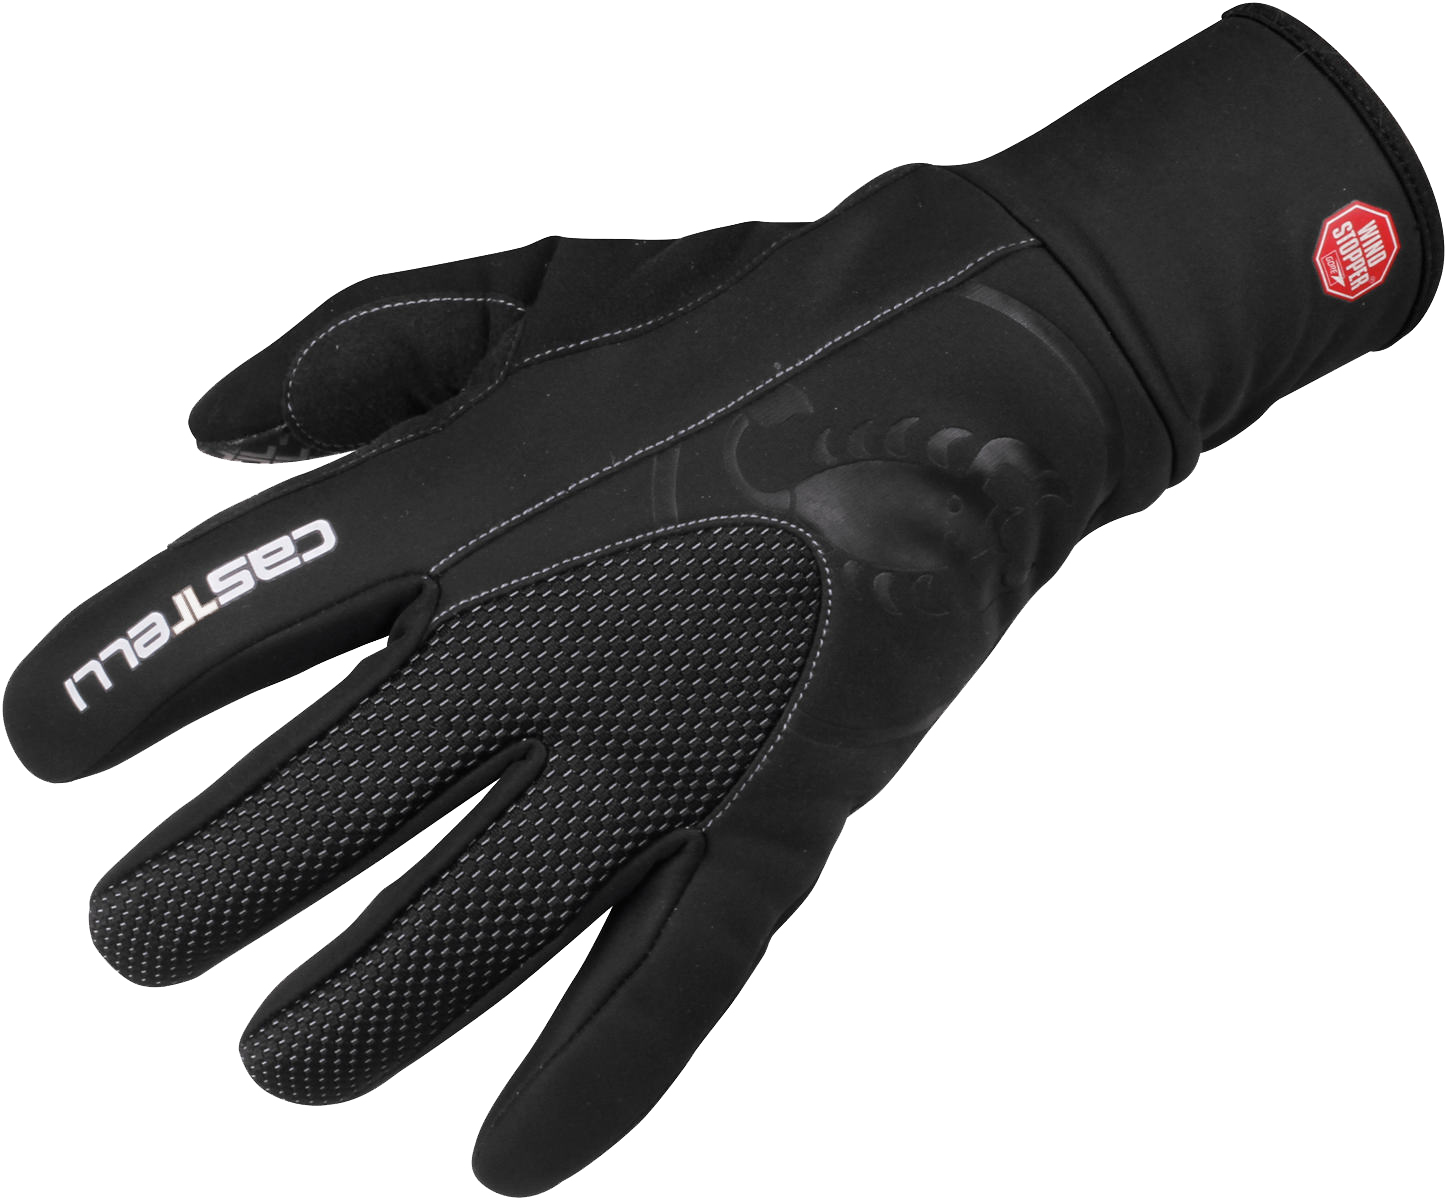 Driving gloves london ontario - Estremo Gloves Black